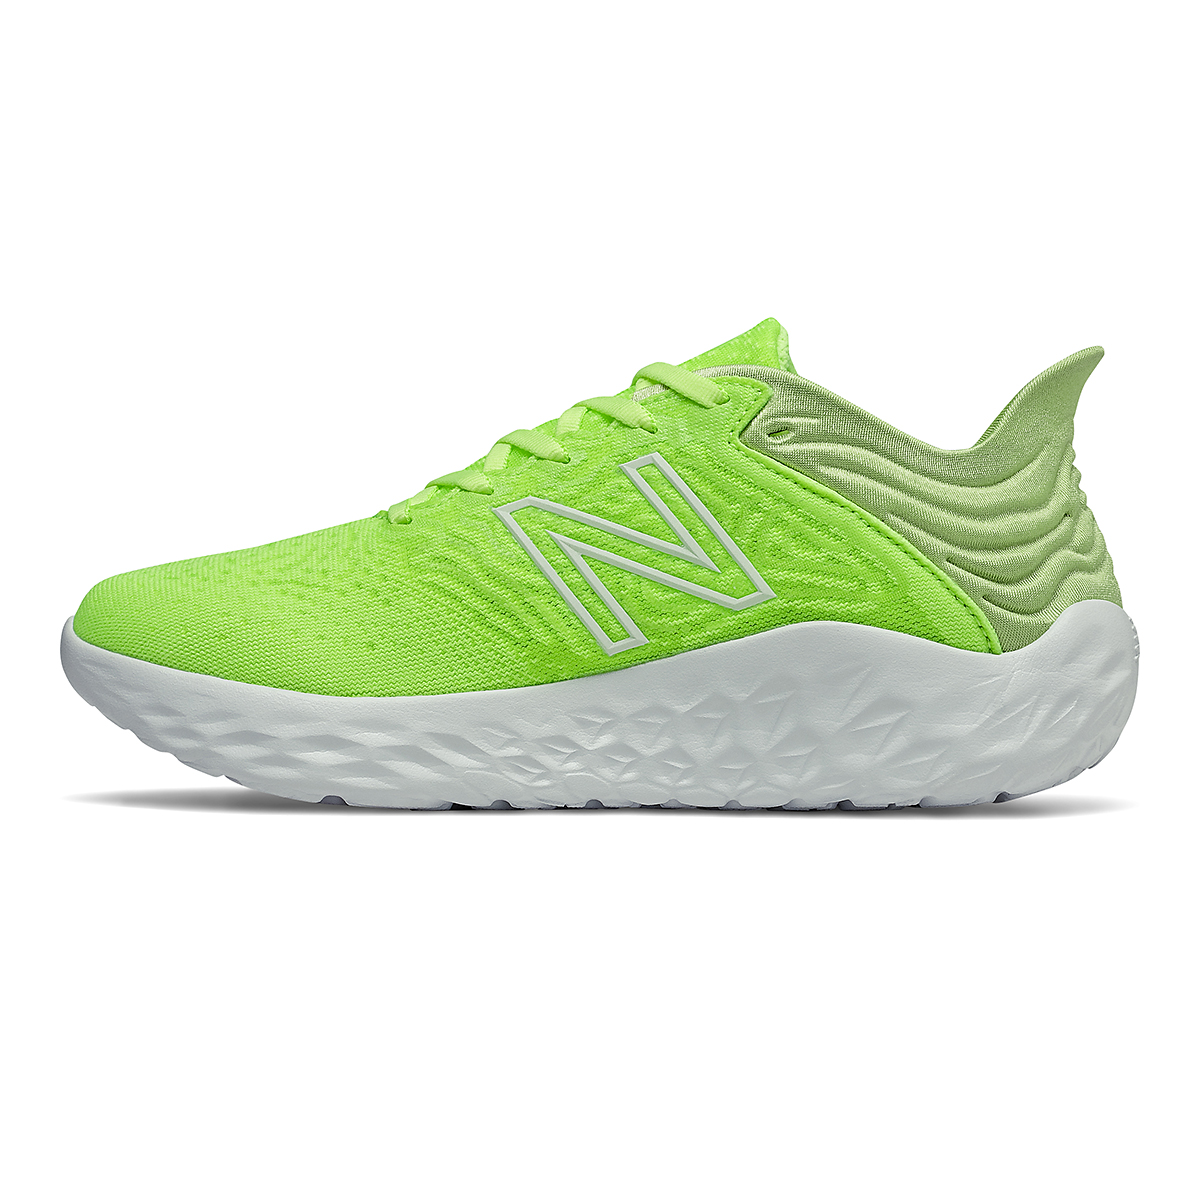 Women's New Balance Beacon V3 Running Shoe - Color: Lime Glo - Size: 6 - Width: Regular, Lime Glo, large, image 2